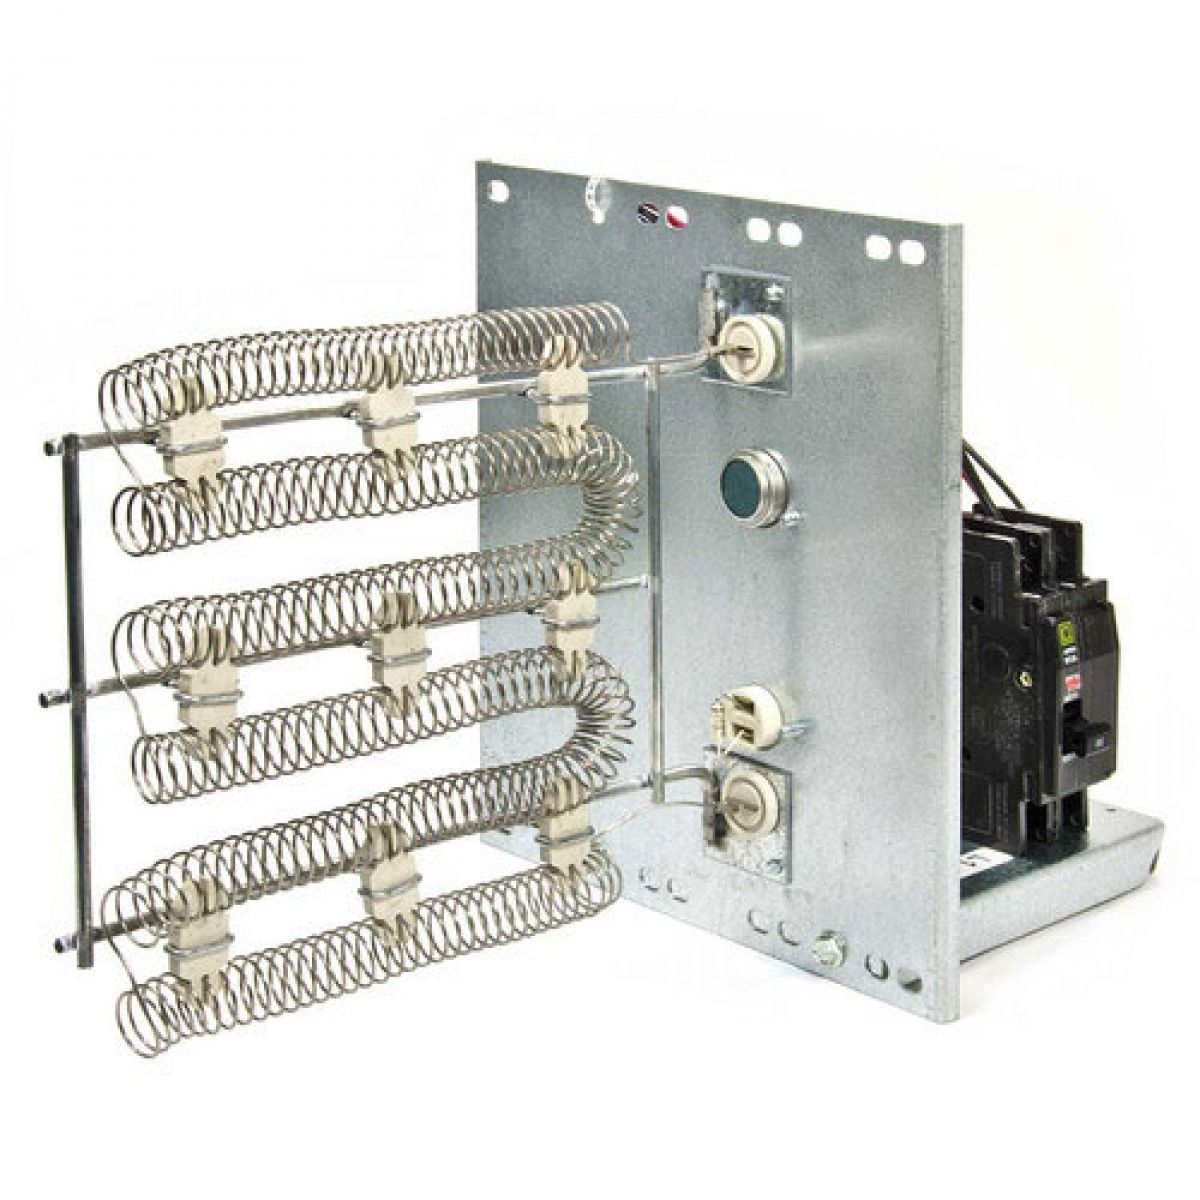 hkr 05c 4_3_1 goodman 15kw heating element with breaker hka 15c in heaters goodman hkr 15c wiring diagram at gsmx.co